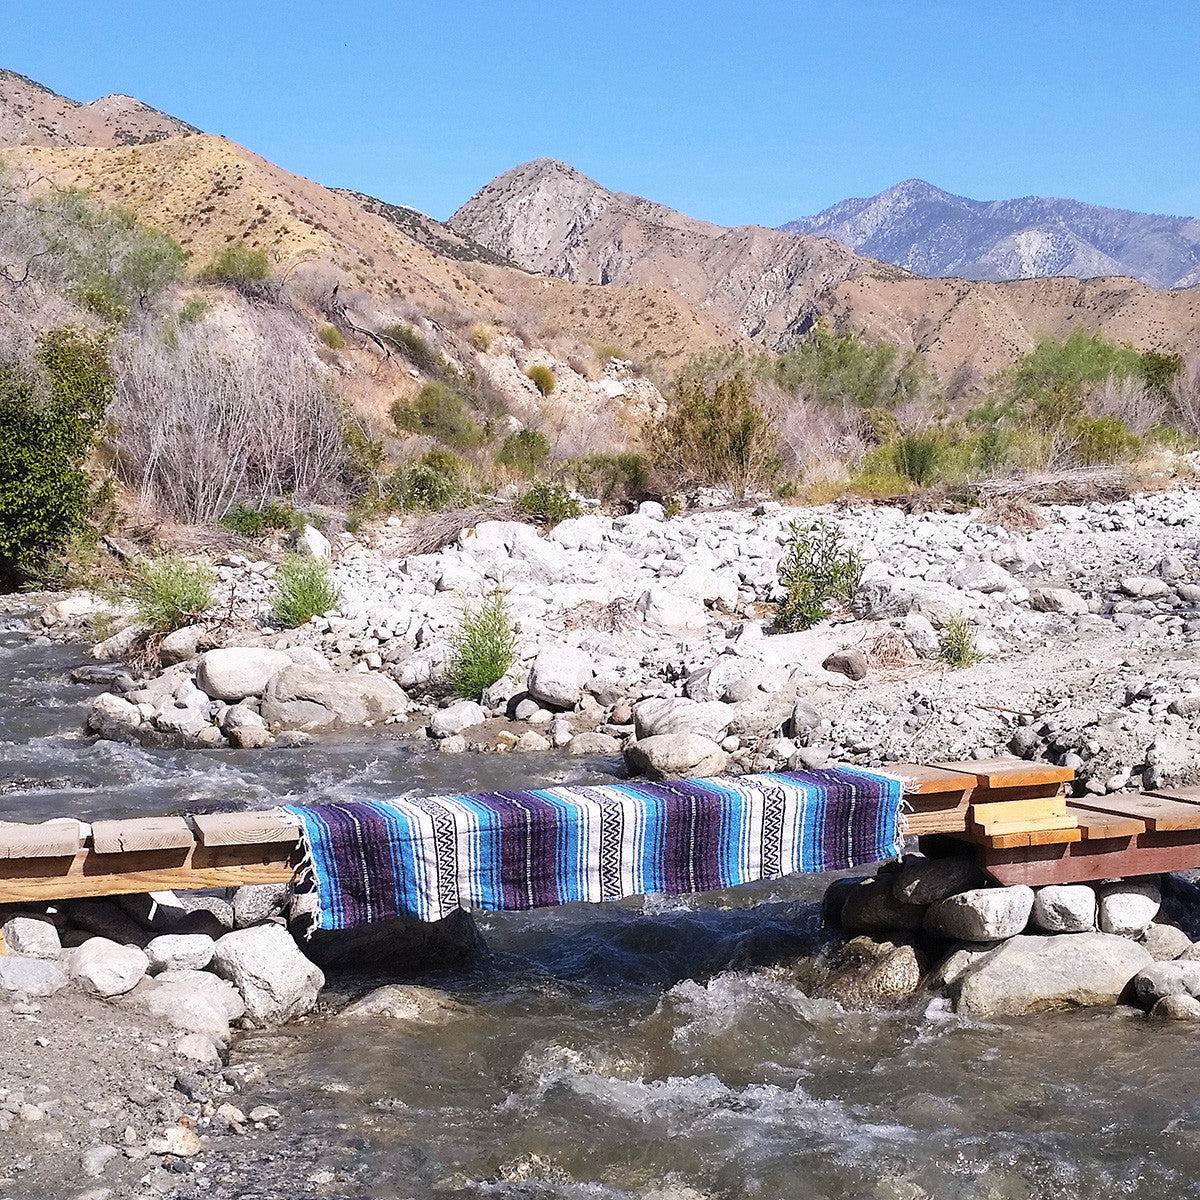 Take your Turquoise Dream Bohemian Fiesta Blanket hiking and you'll always have a spot to stop and enjoy the view.